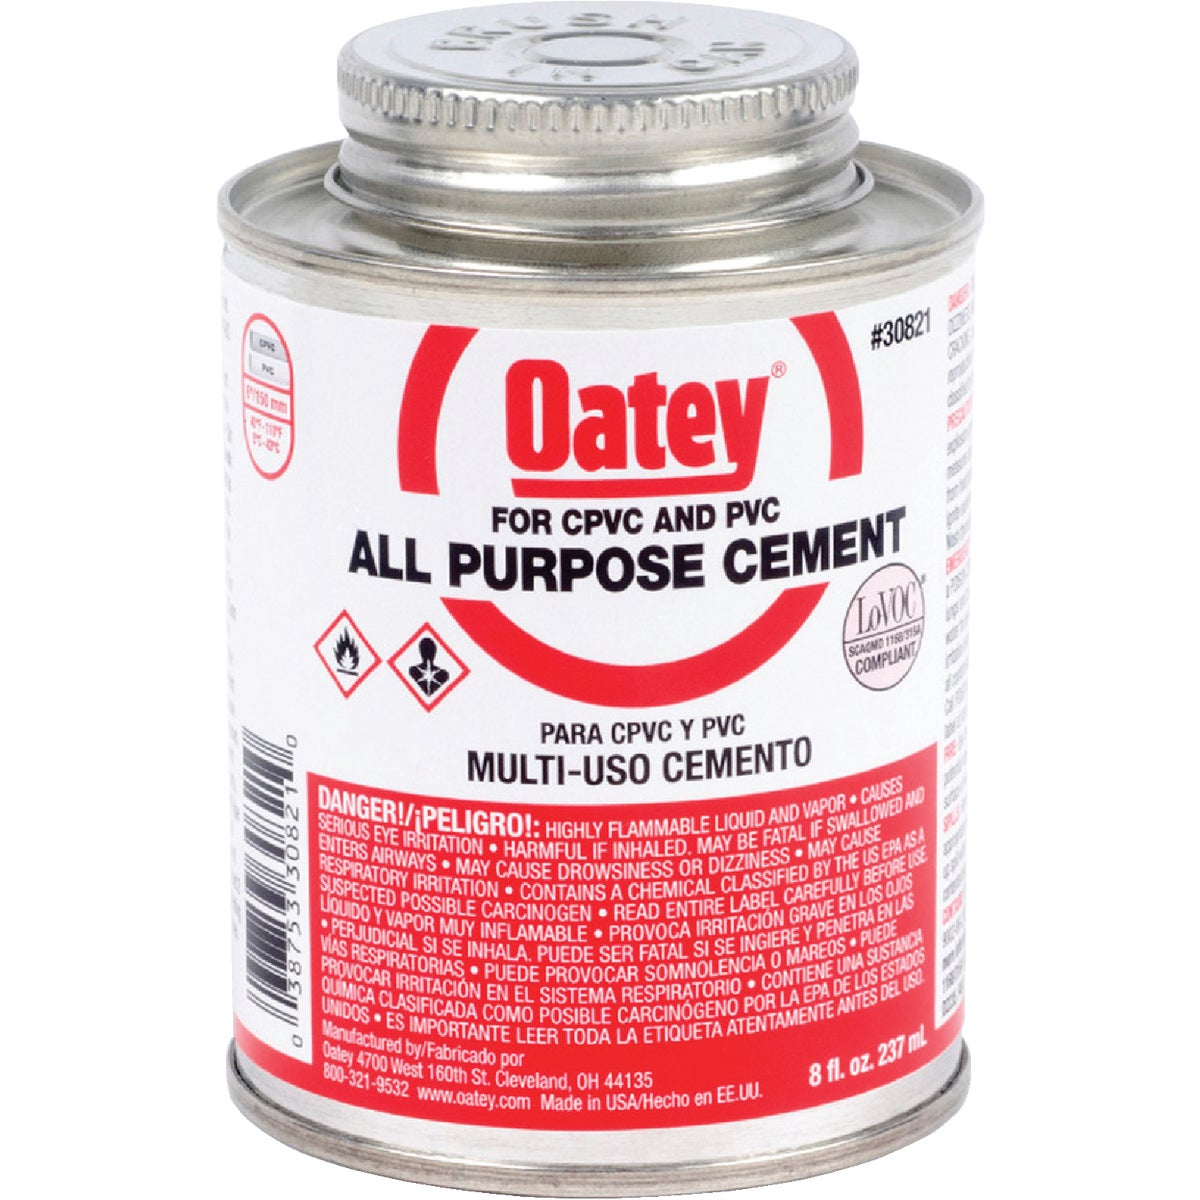 1/2PT ALL-PURPOSE CEMENT - 30821 by Oatey Scs